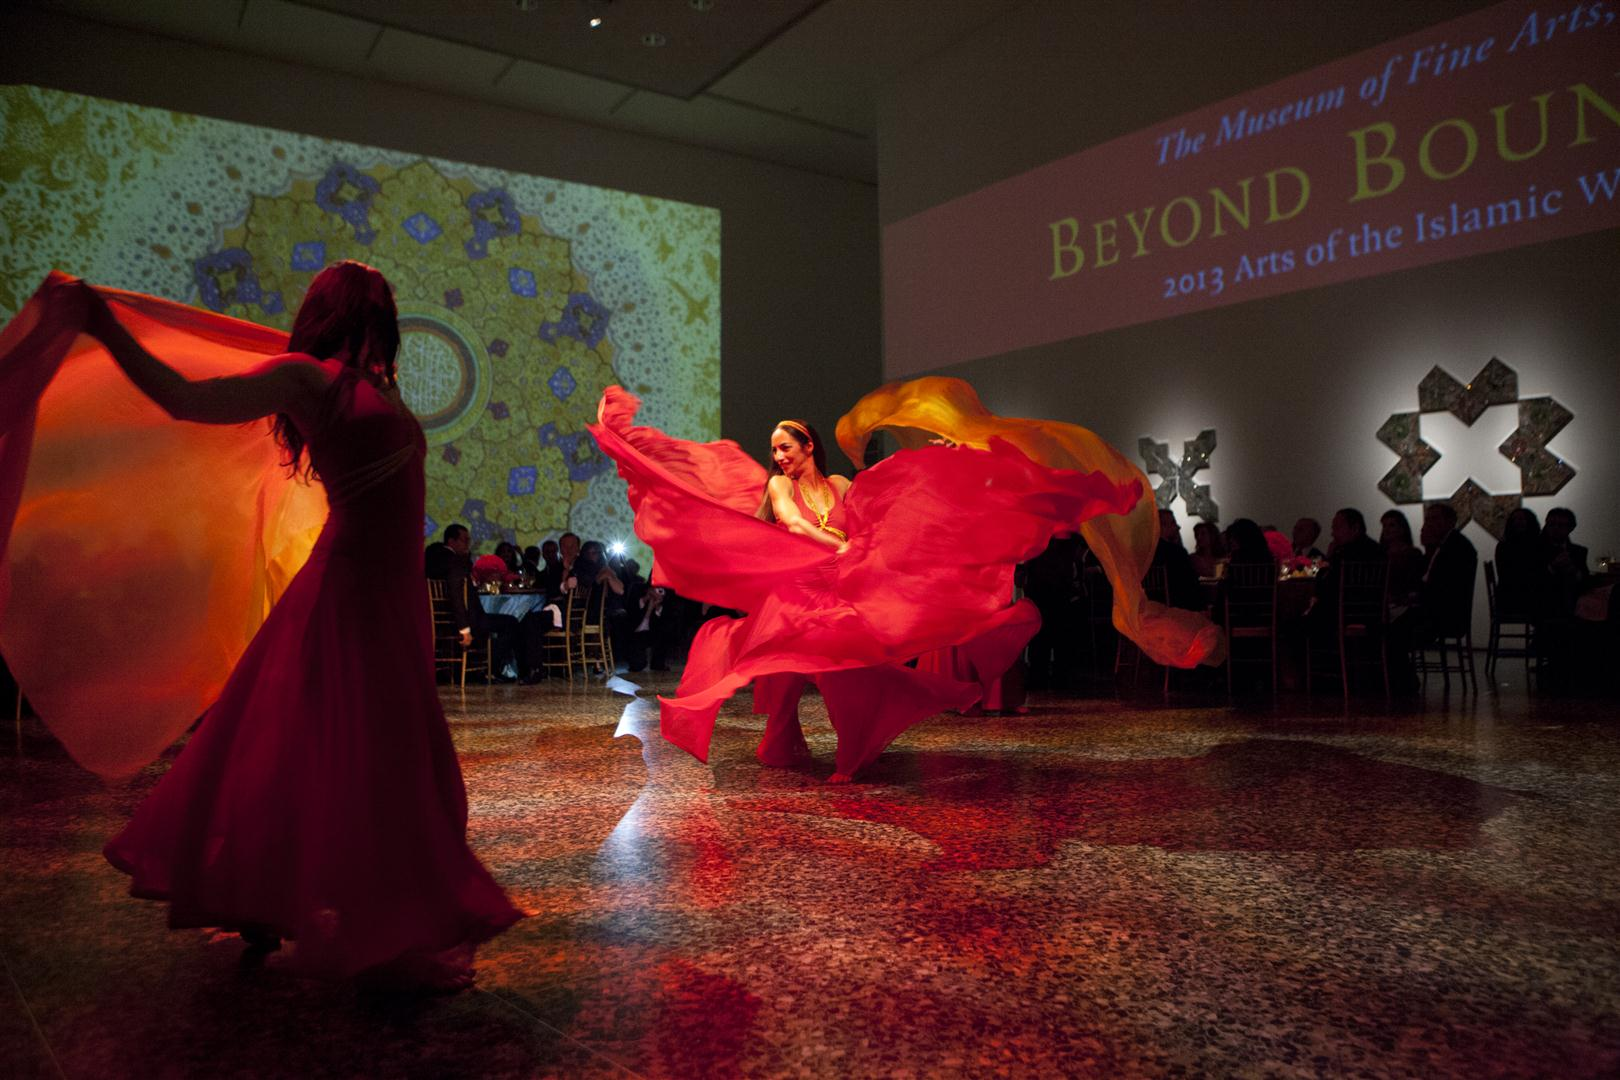 who wore what stunning gowns and royalty were the highlights of who wore what stunning gowns and royalty were the highlights of the mfah islamic world gala beyond boundaries lcahouston